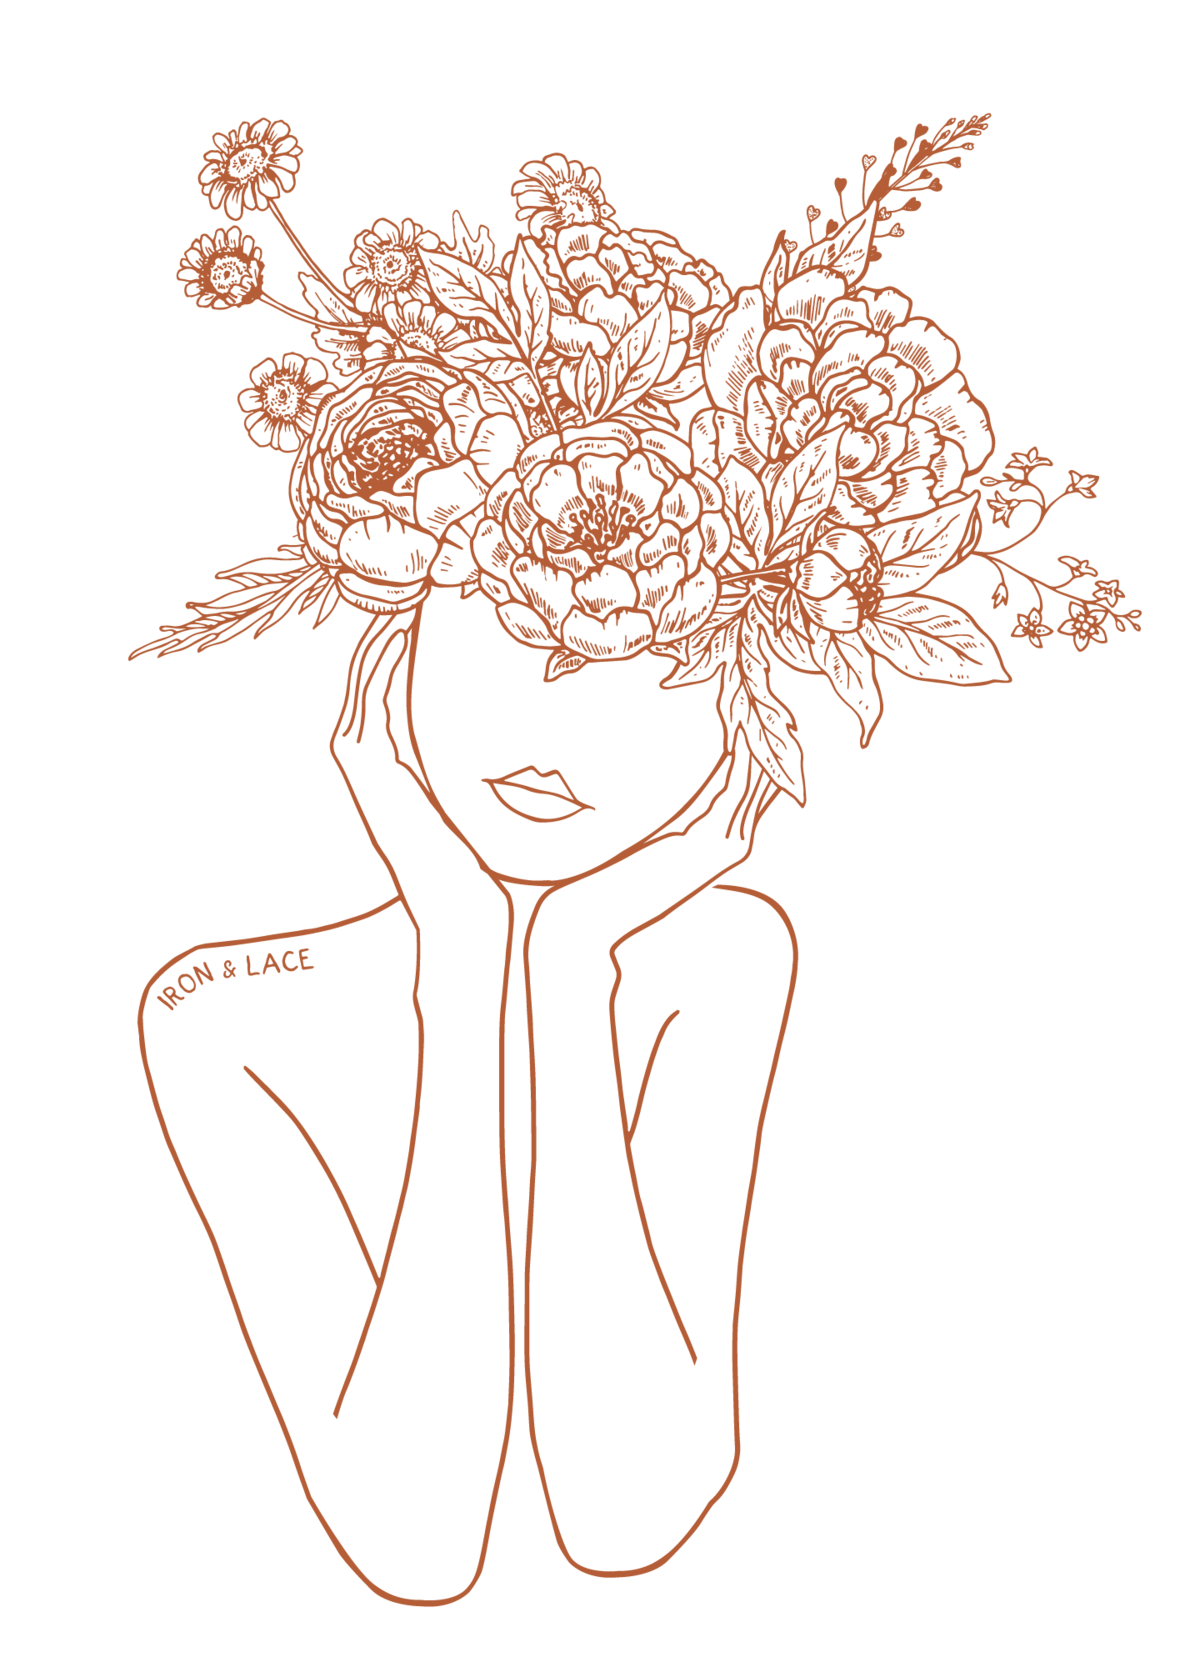 Iron-and-Lace-Girl-with-Flowers-2-Orange